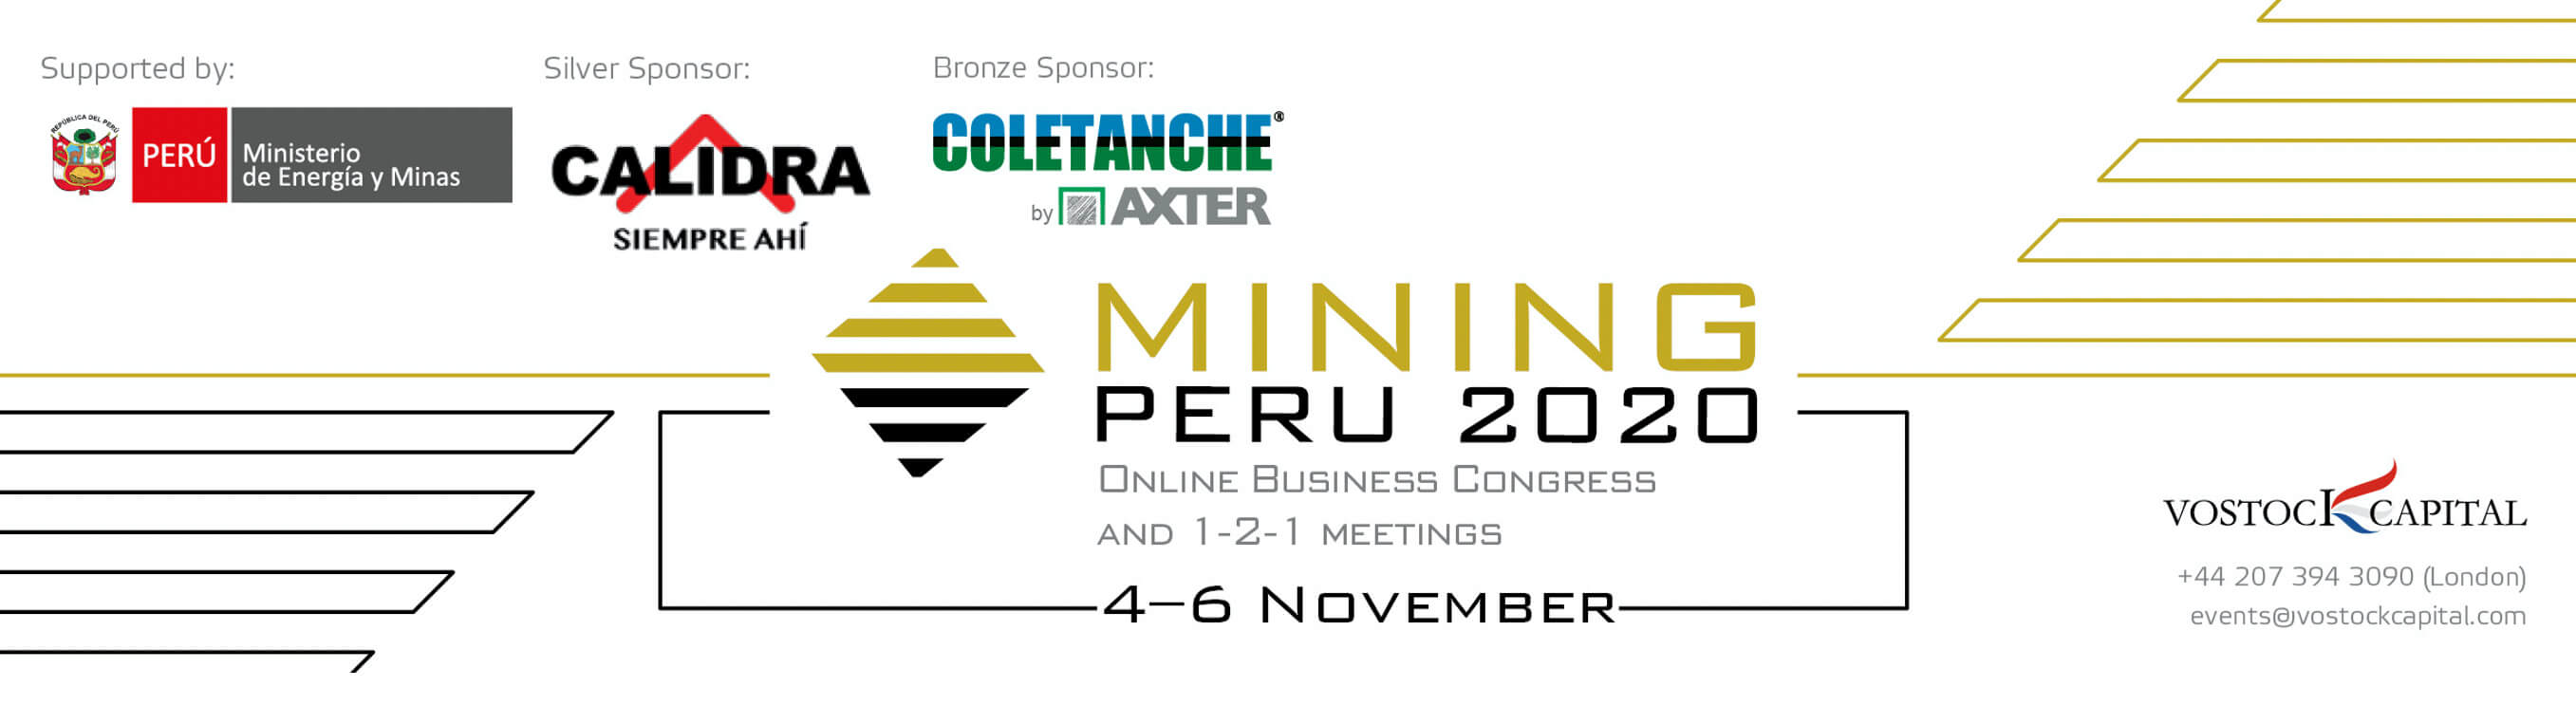 Mining Peru 2020: Register to the Online Business Congress and 1-2-1 meetings